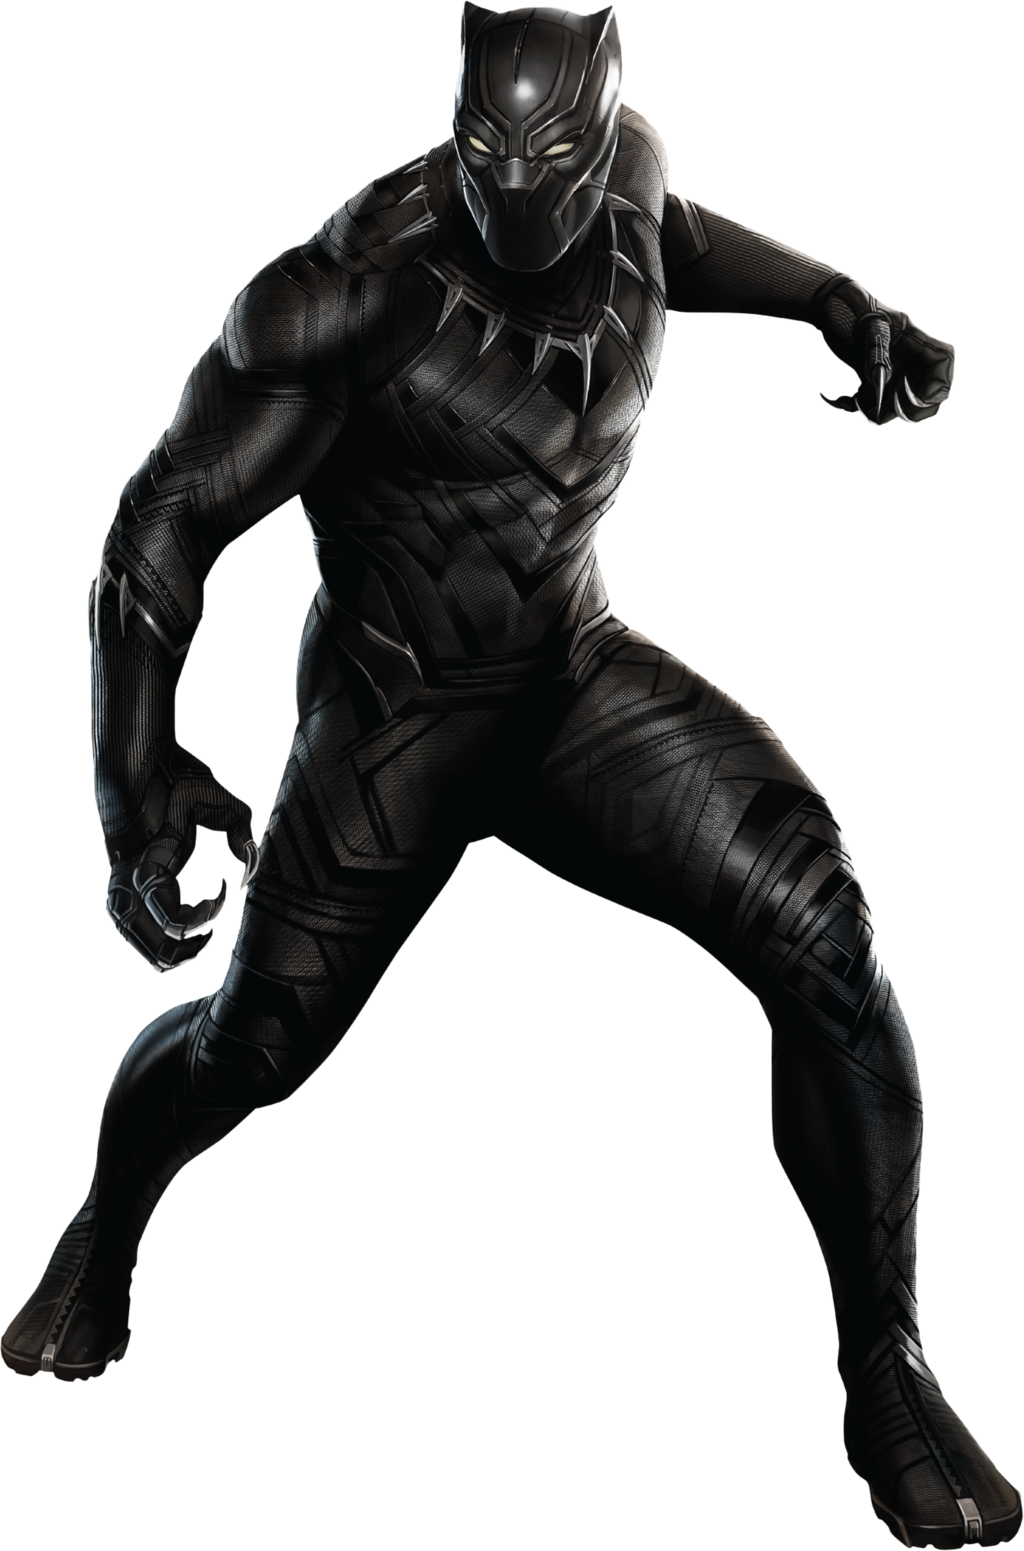 Black Panther (Marvel Cinematic Universe)   VS Battles Wiki   Fandom powered by Wikia